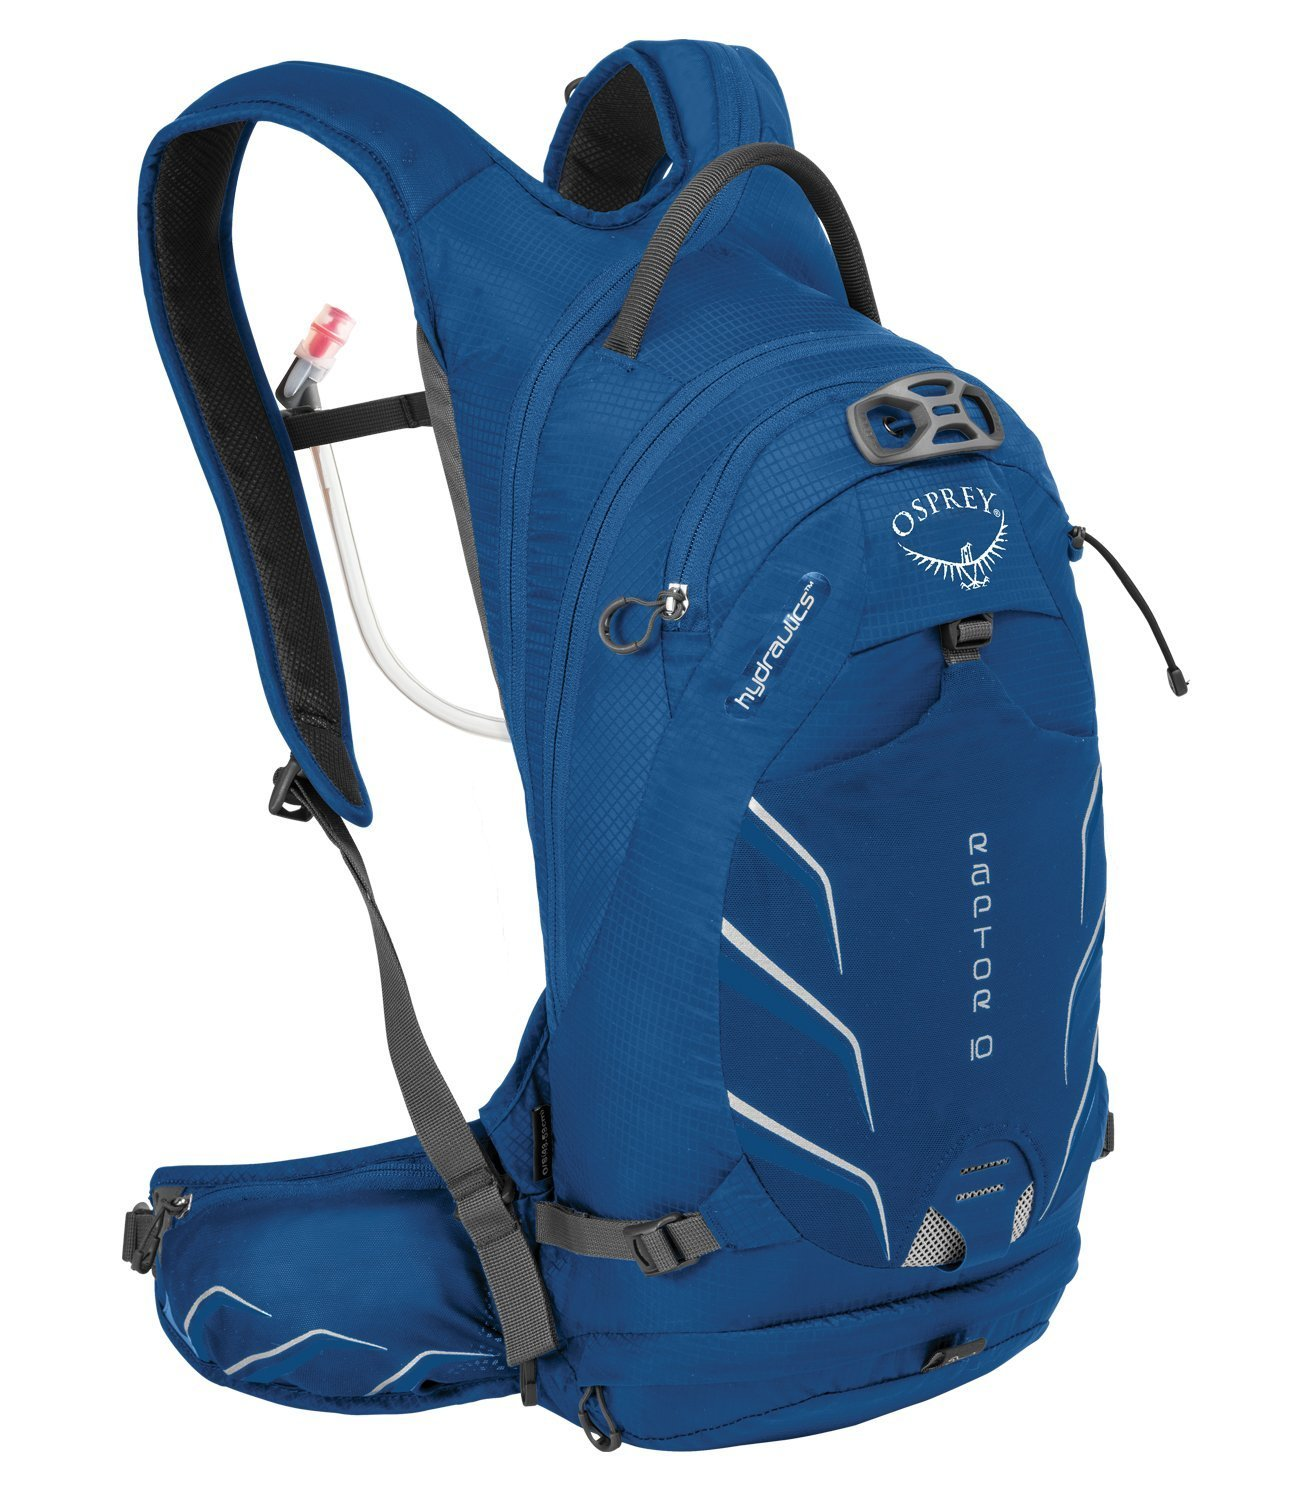 (オスプレー) Osprey Packs Raptor 10 Hydration Pack (並行輸入品)   B07CXVN3GG